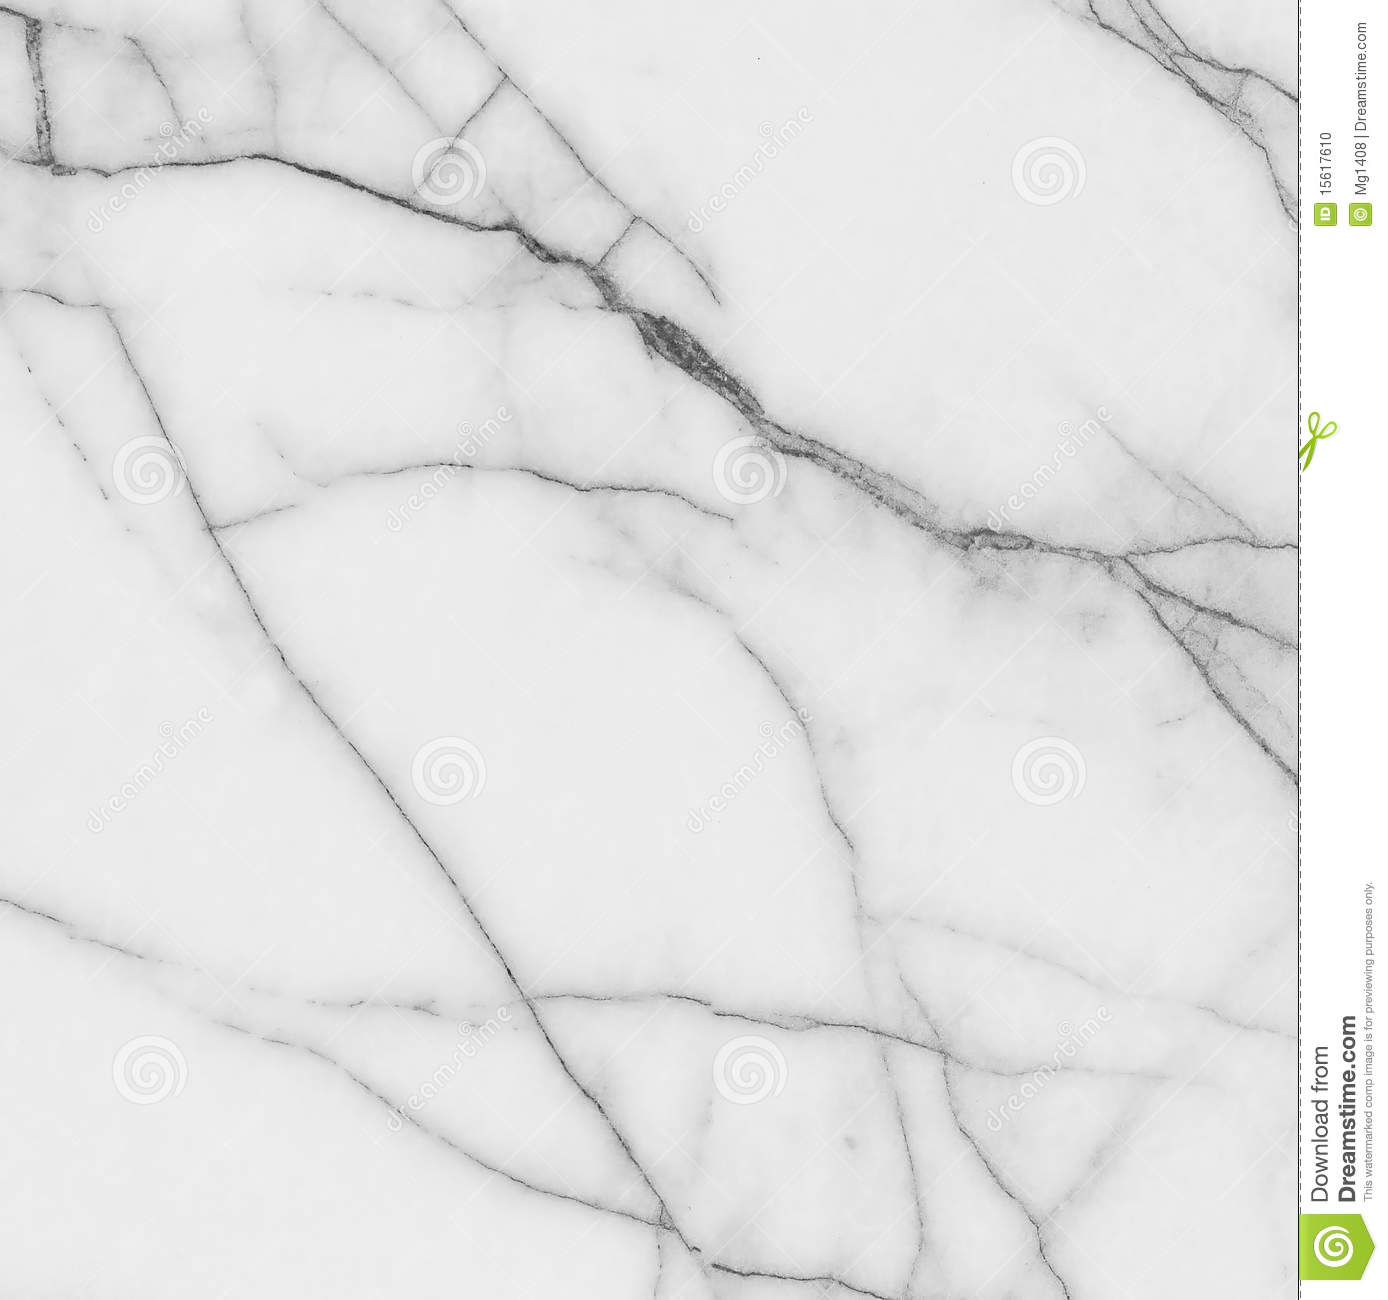 White Marble Texture Stock Photo Image Of Pattern